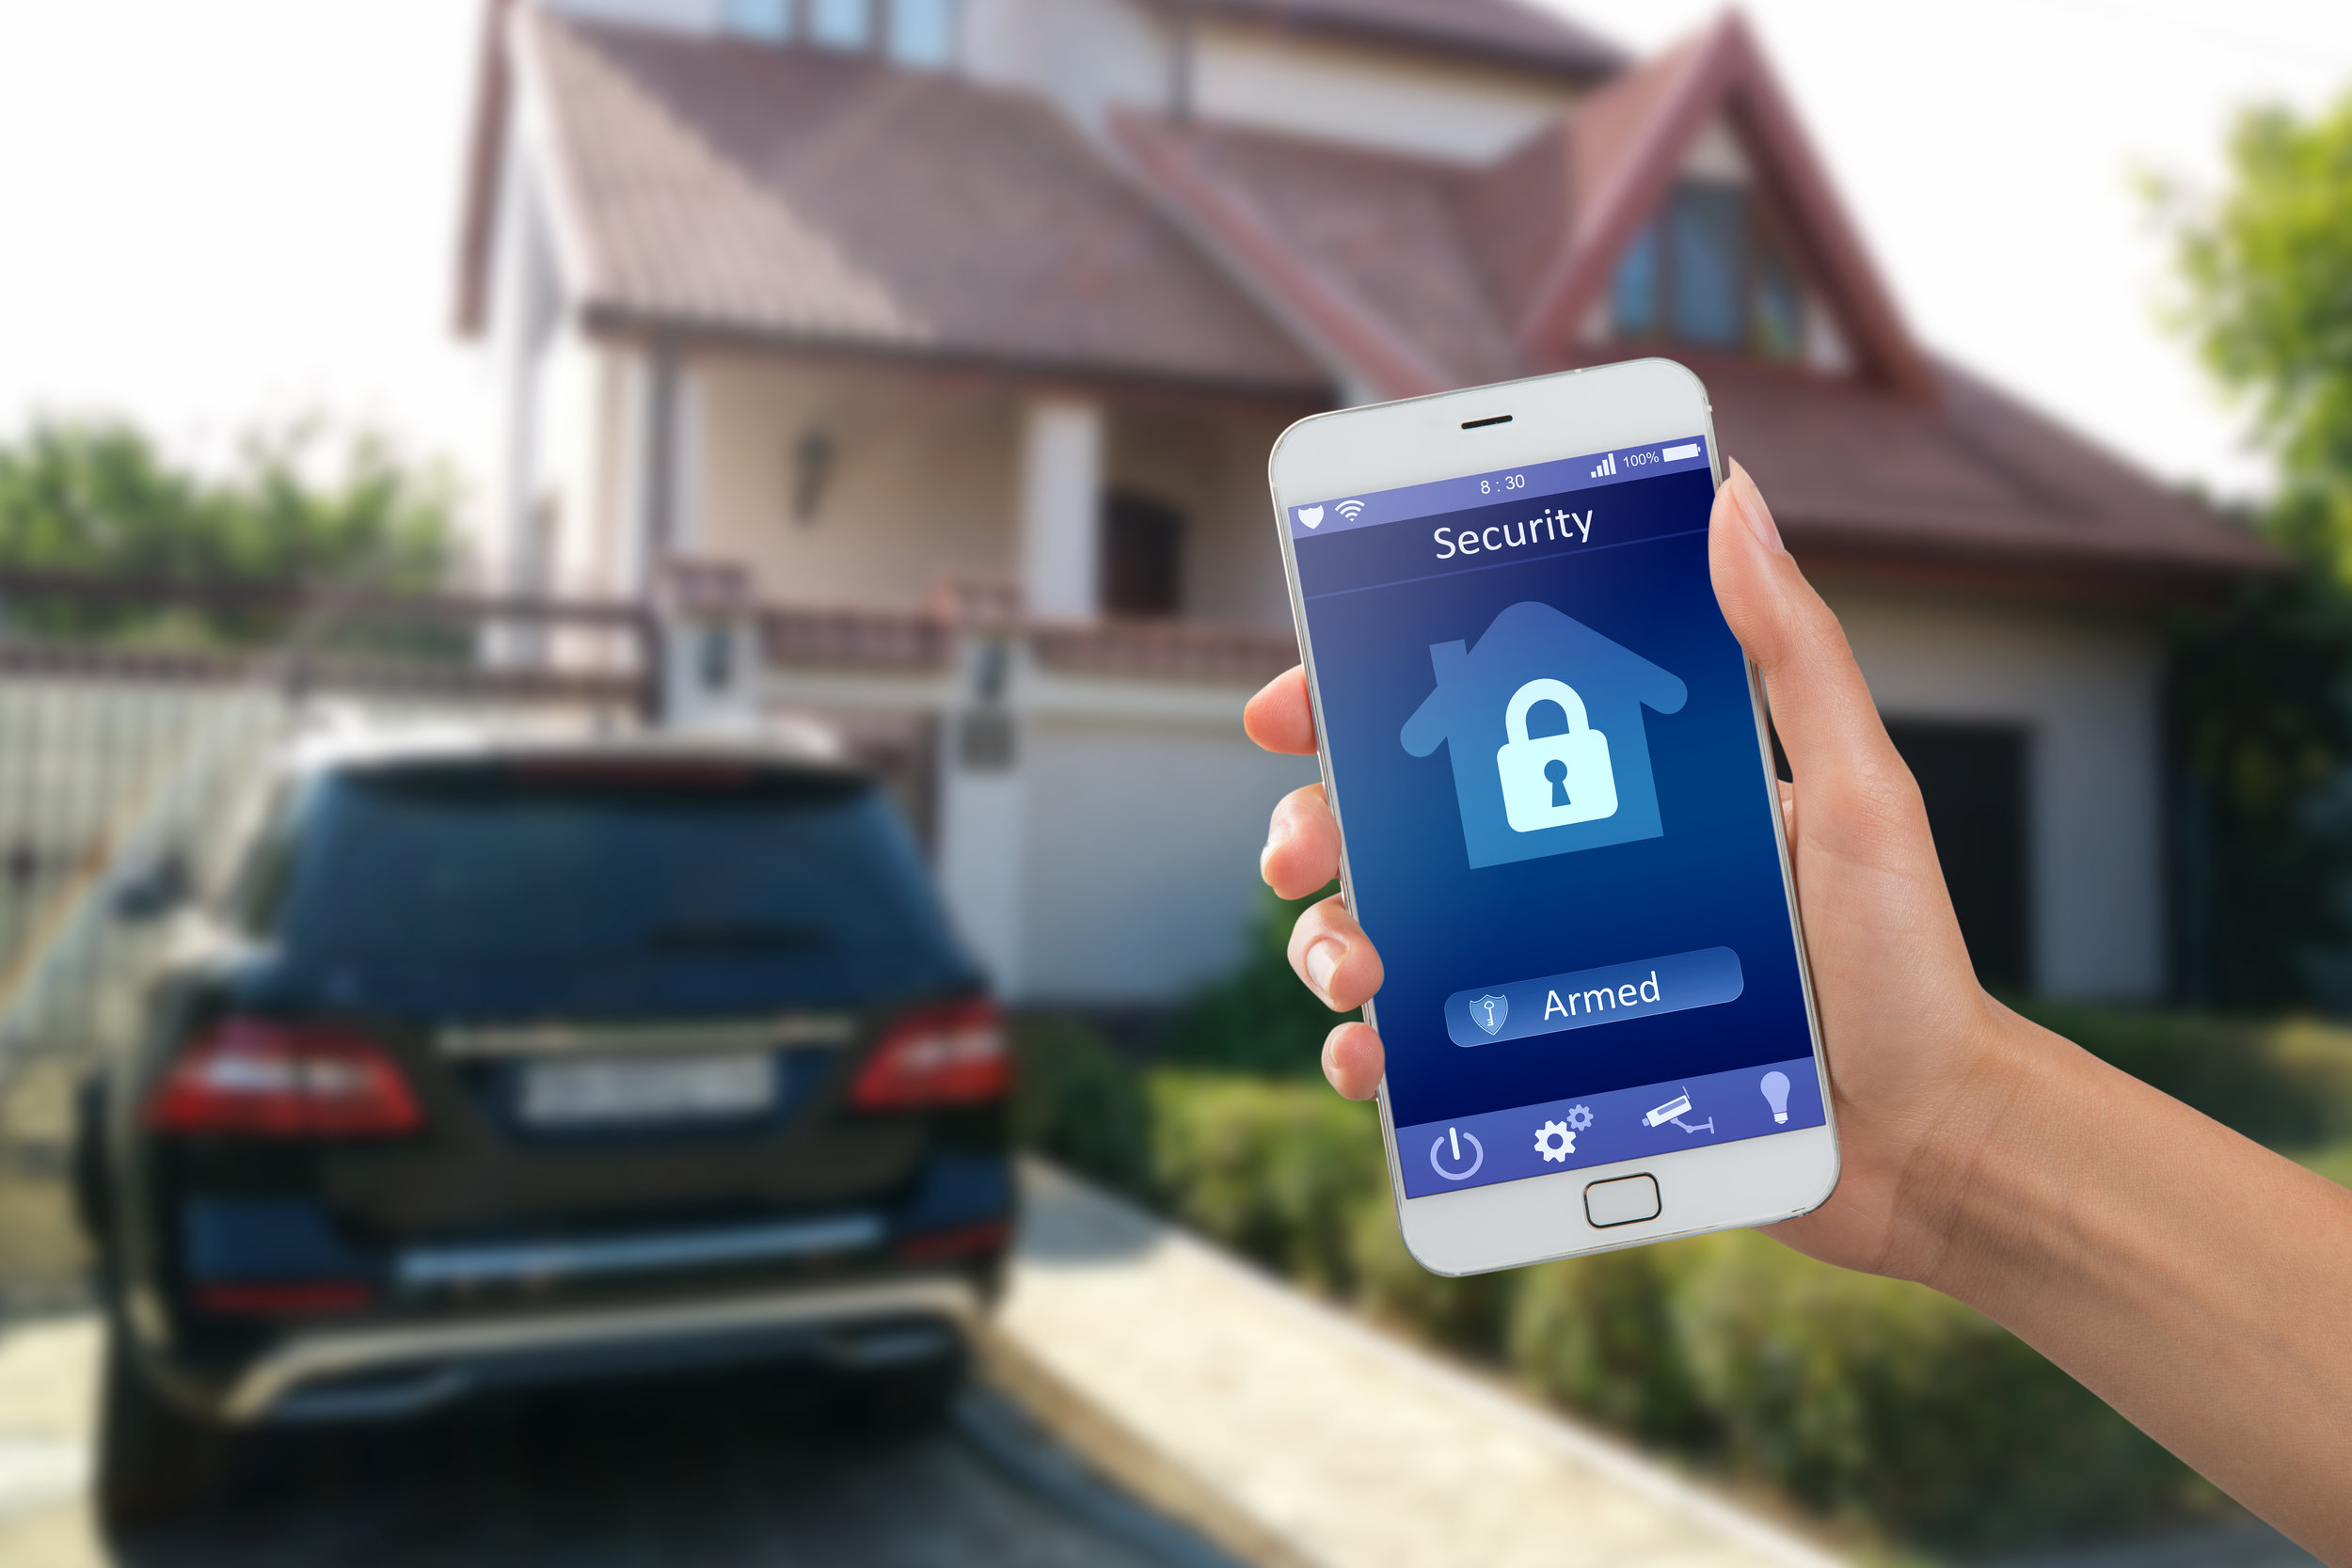 stock-photo-smartphone-with-home-security-app-in-a-hand-on-the-building-background-567476830.jpg